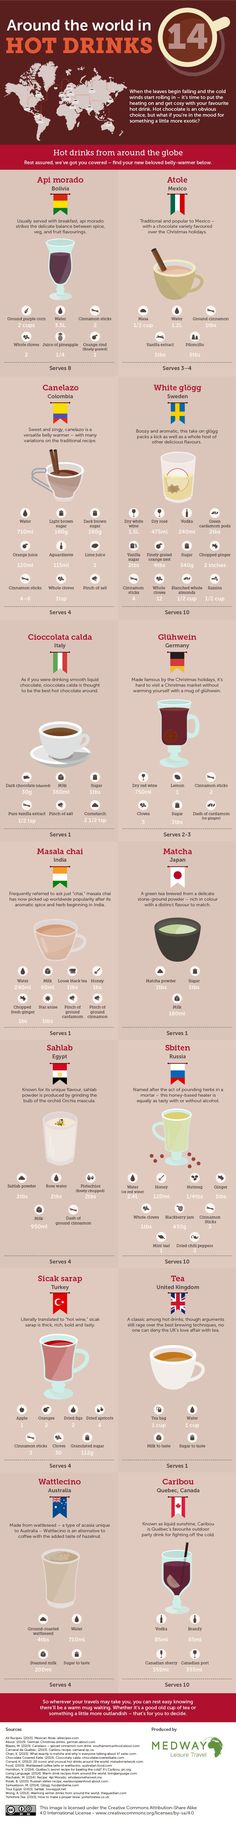 """""""From atole in Mexico to white glögg in Sweden, you'll be craving one of these seriously delicious beverages!"""""""